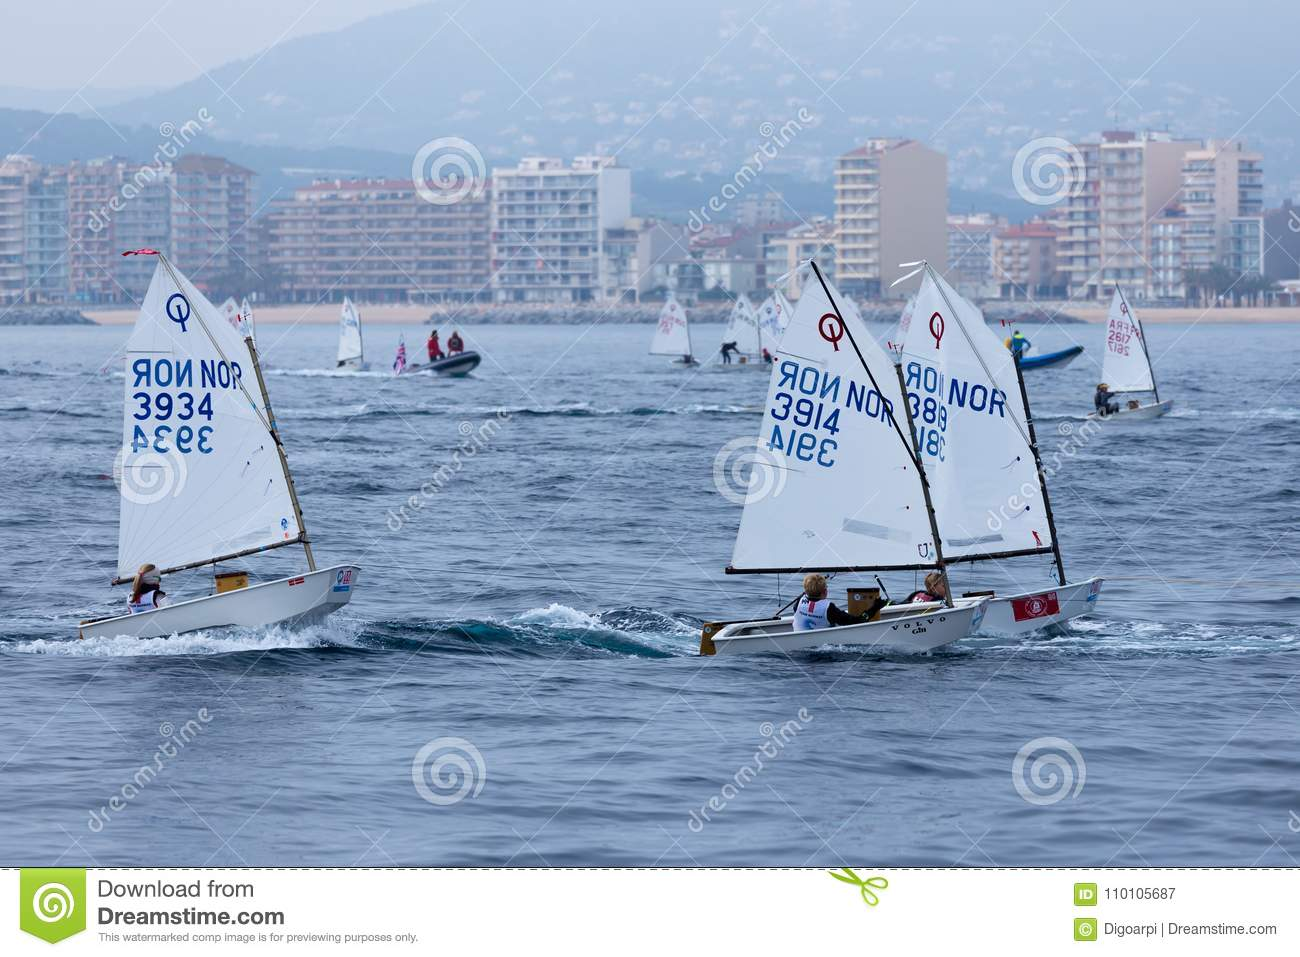 29. INTERNATIONALE PALAMOS-OPTIMIST-TROPHÄE 2018, 13. NATIONS-SCHALE, am 16. Februar 2018, Stadt Palamos, Spanien